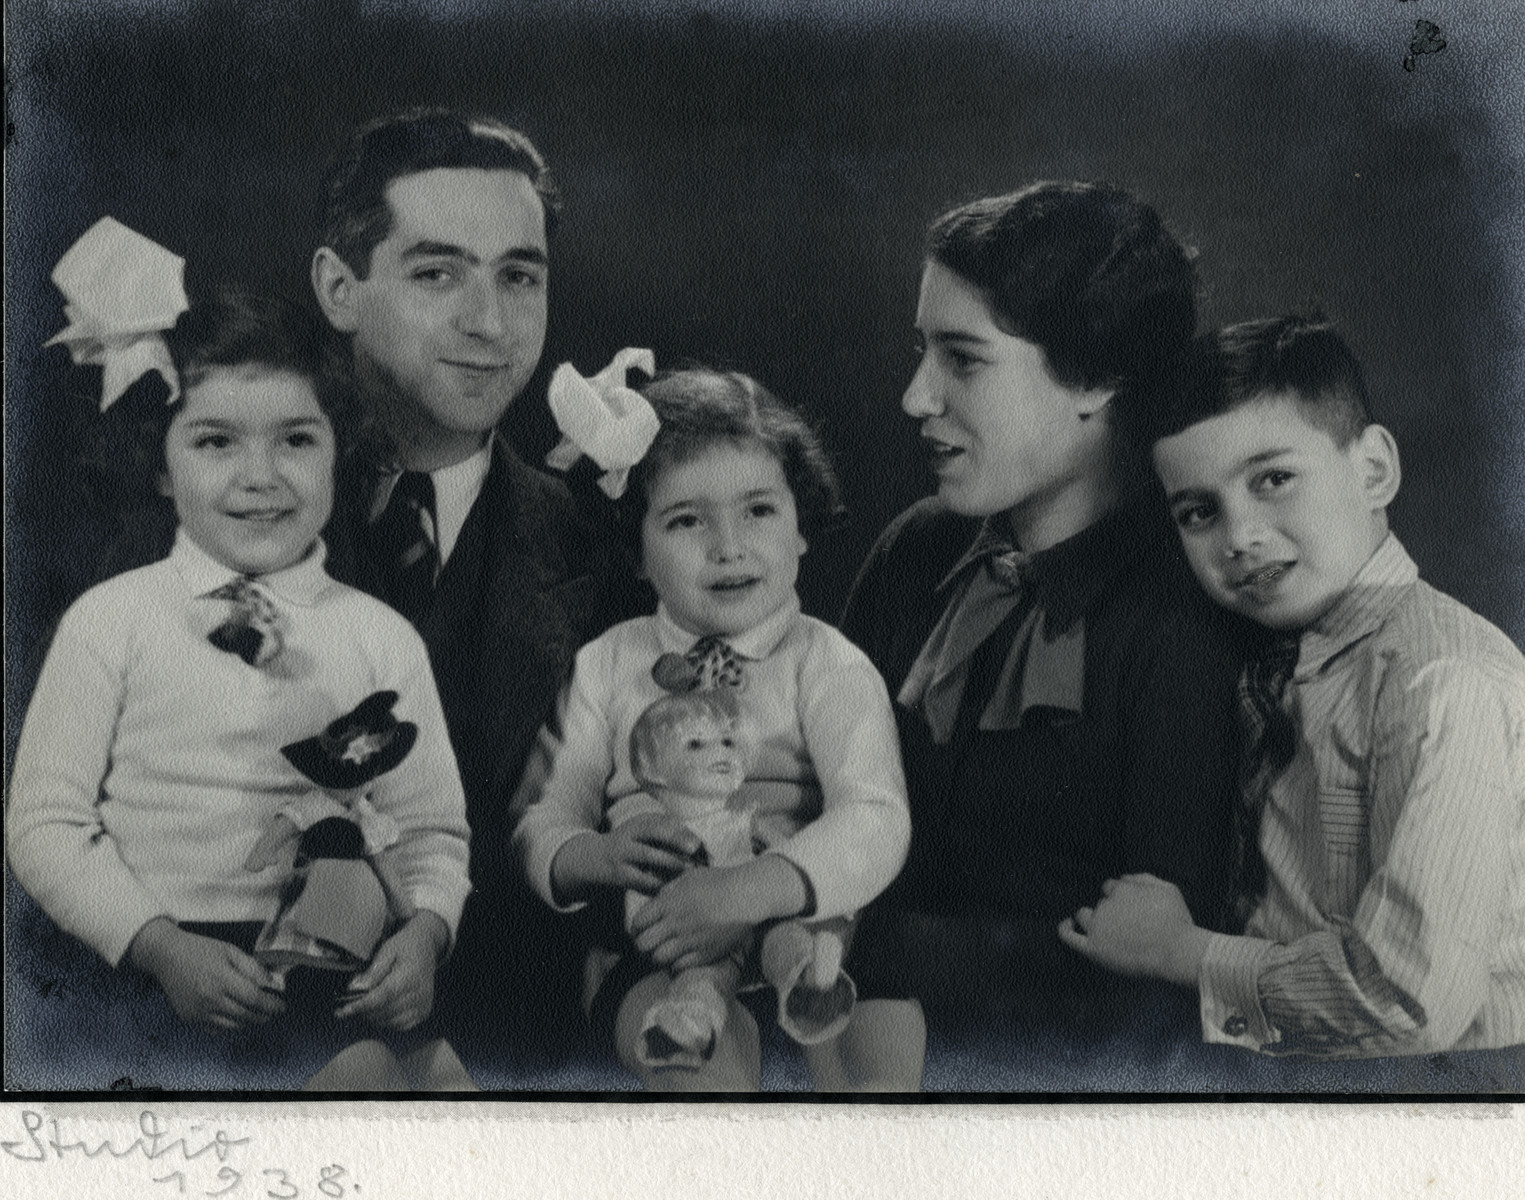 Studio portrait of a Dutch Jewish family.   From left to right are Ruth, Alexander, Naomi, Frederika and Elchanan Tal.